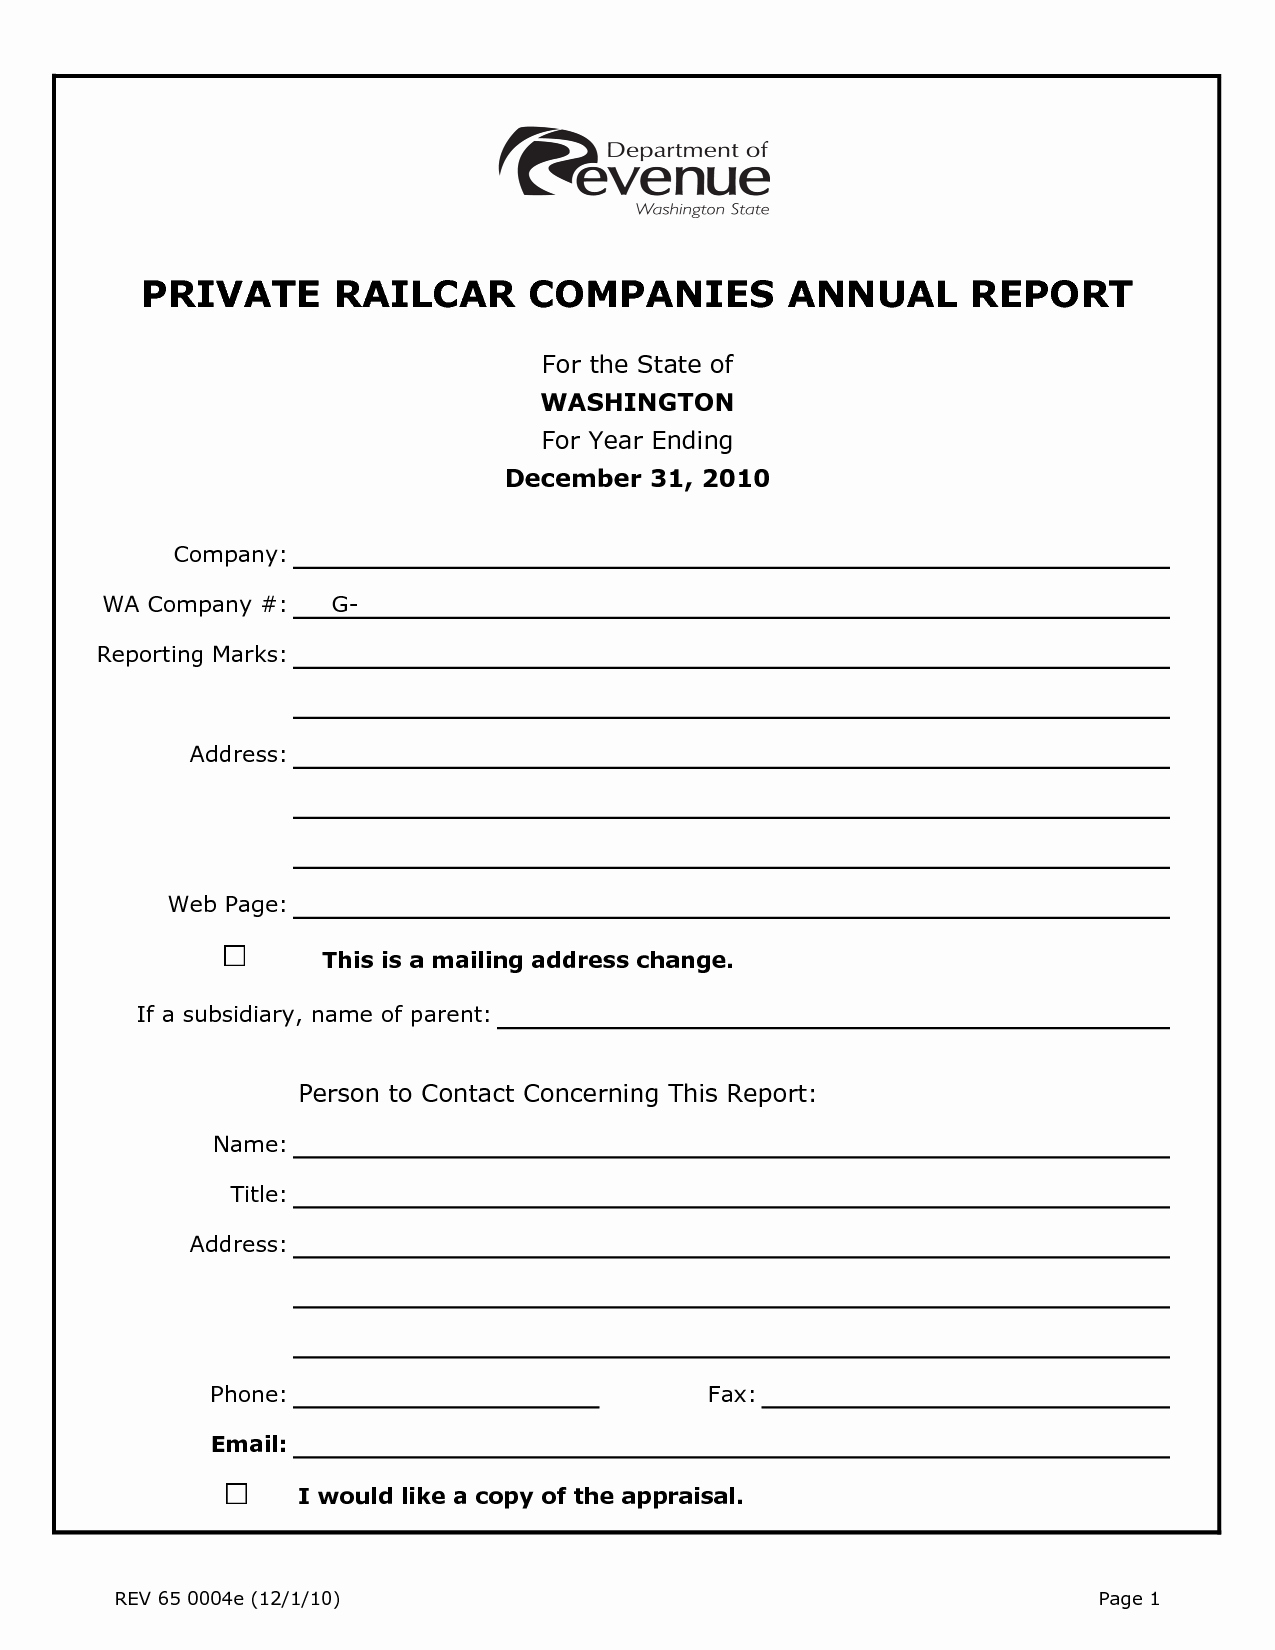 Bill Of Sale Contract Template Best Of Car Sale Agreement Contract Portablegasgrillweber